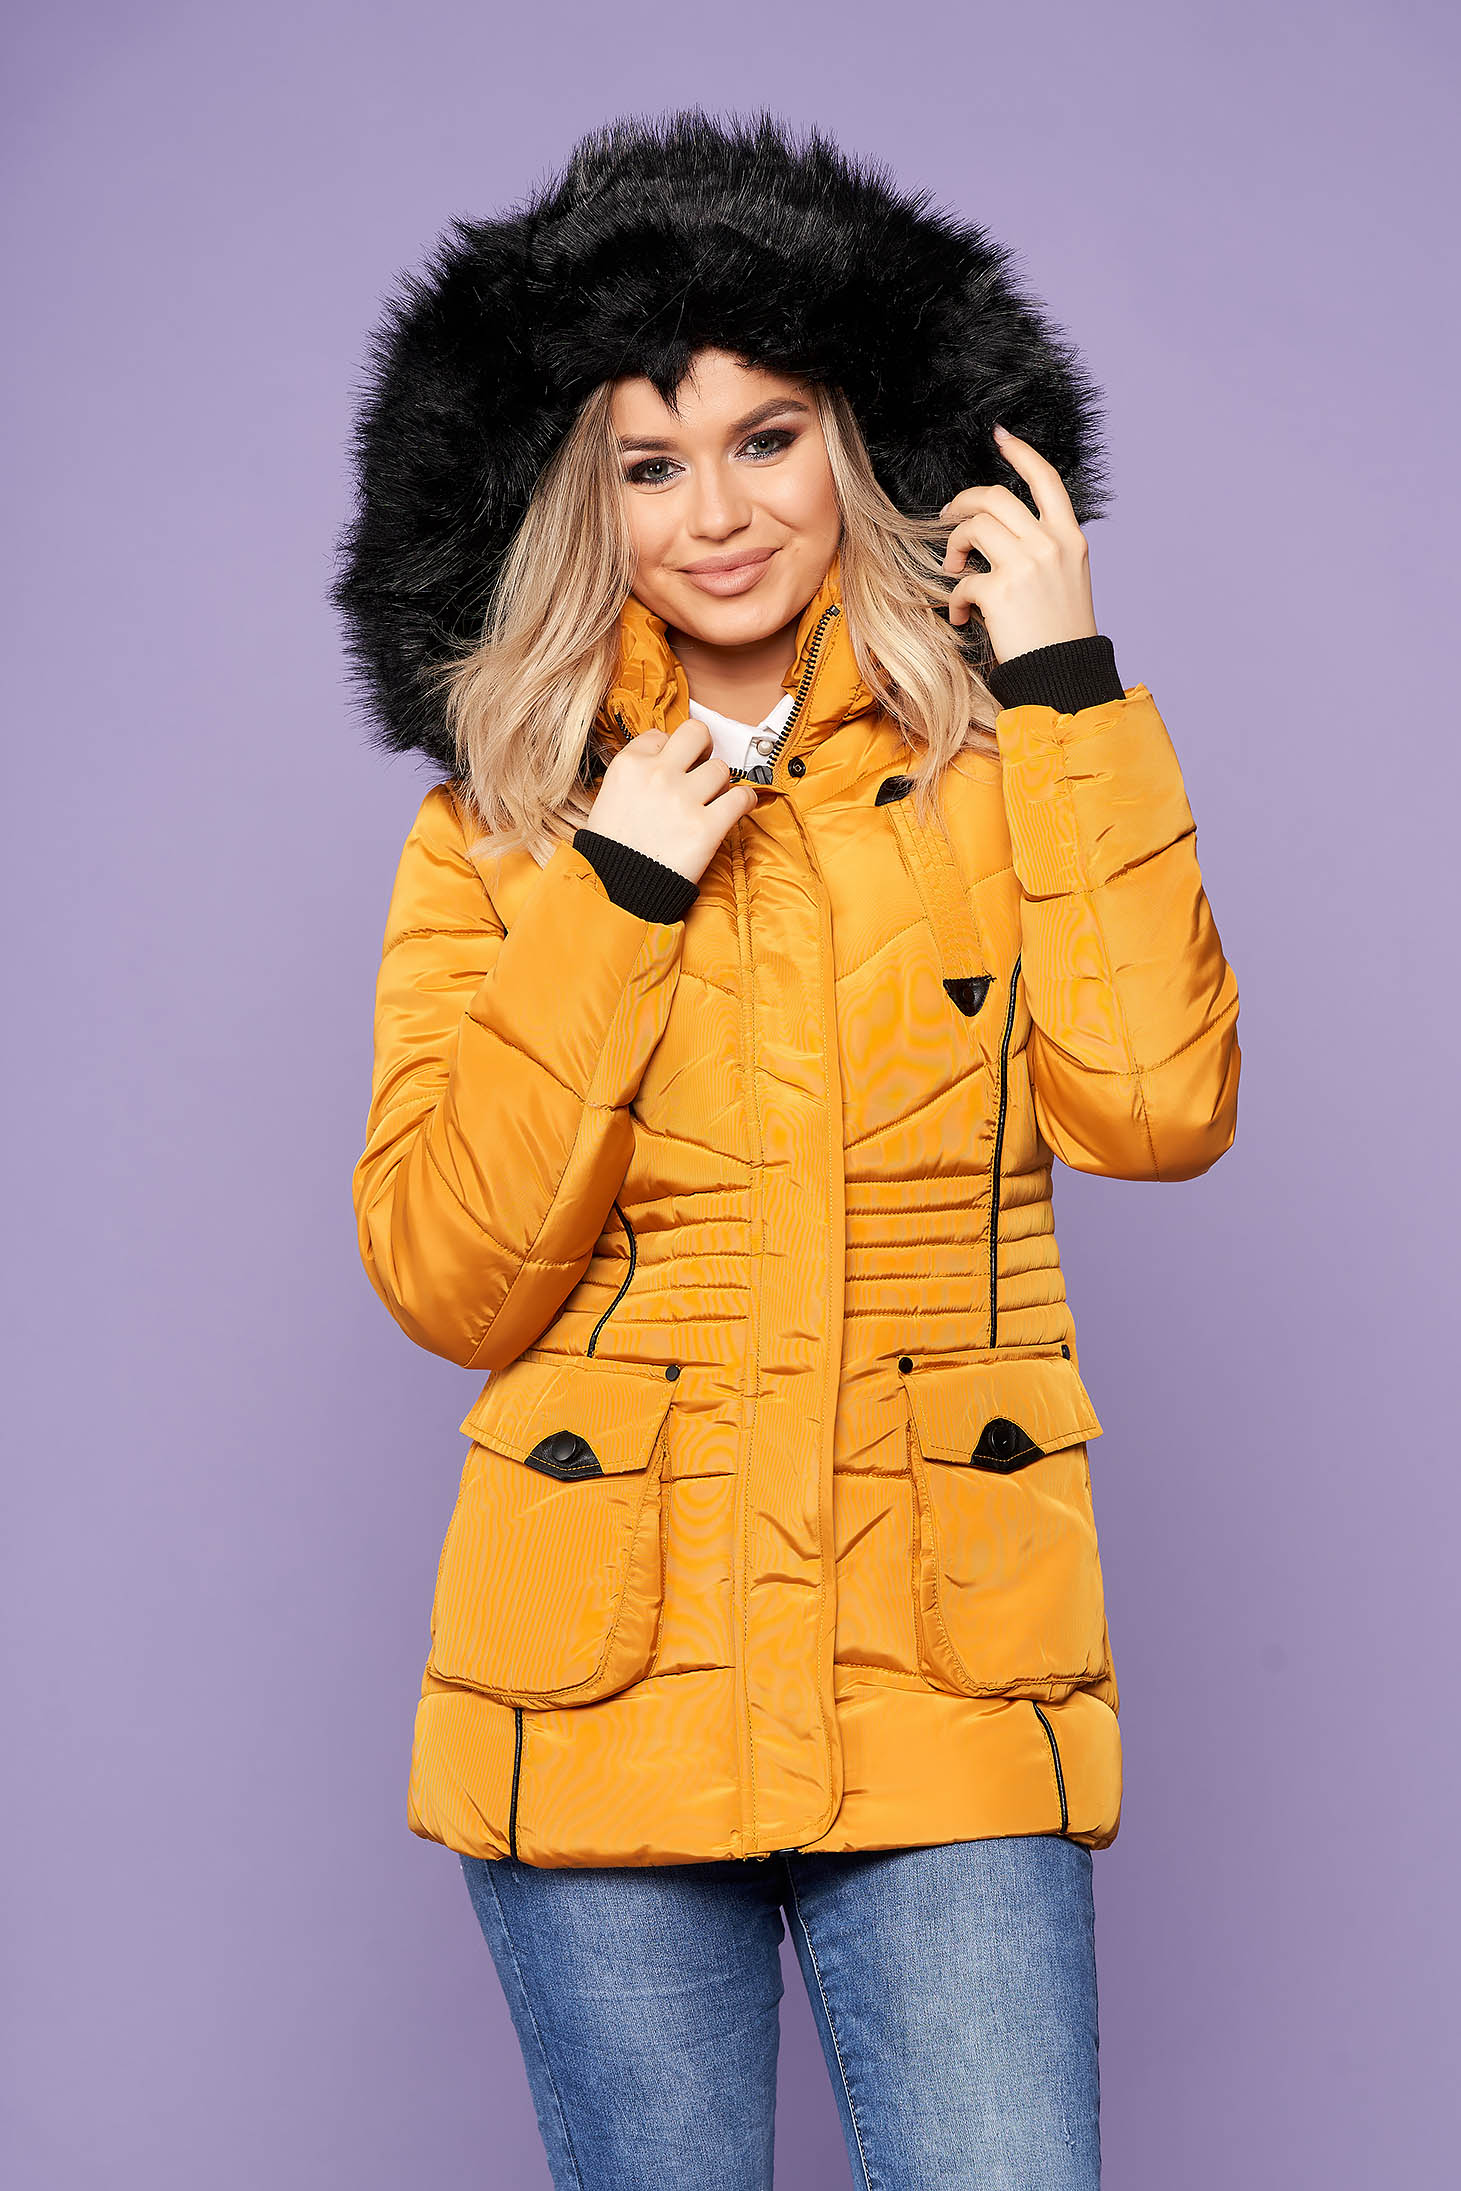 Mustard jacket short cut casual from slicker with pockets with furry hood